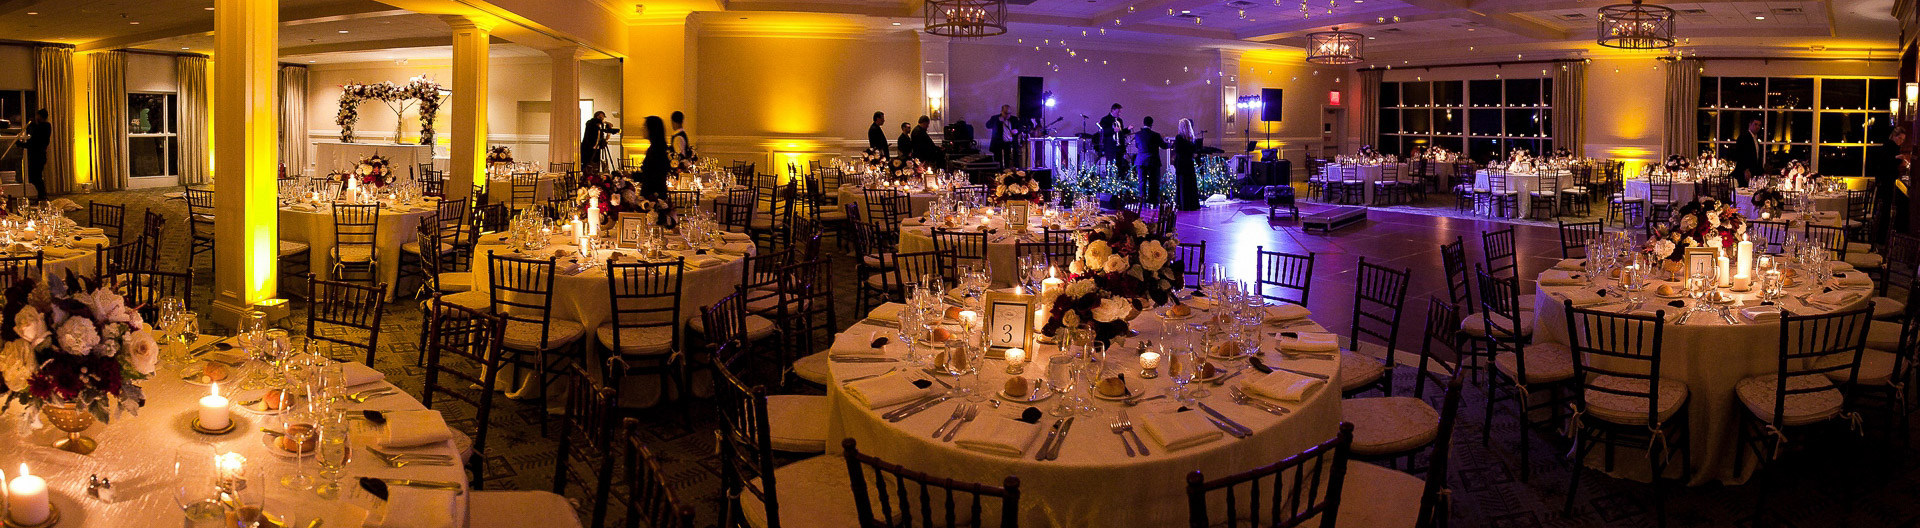 paramount country club wedding room shot decor flowers